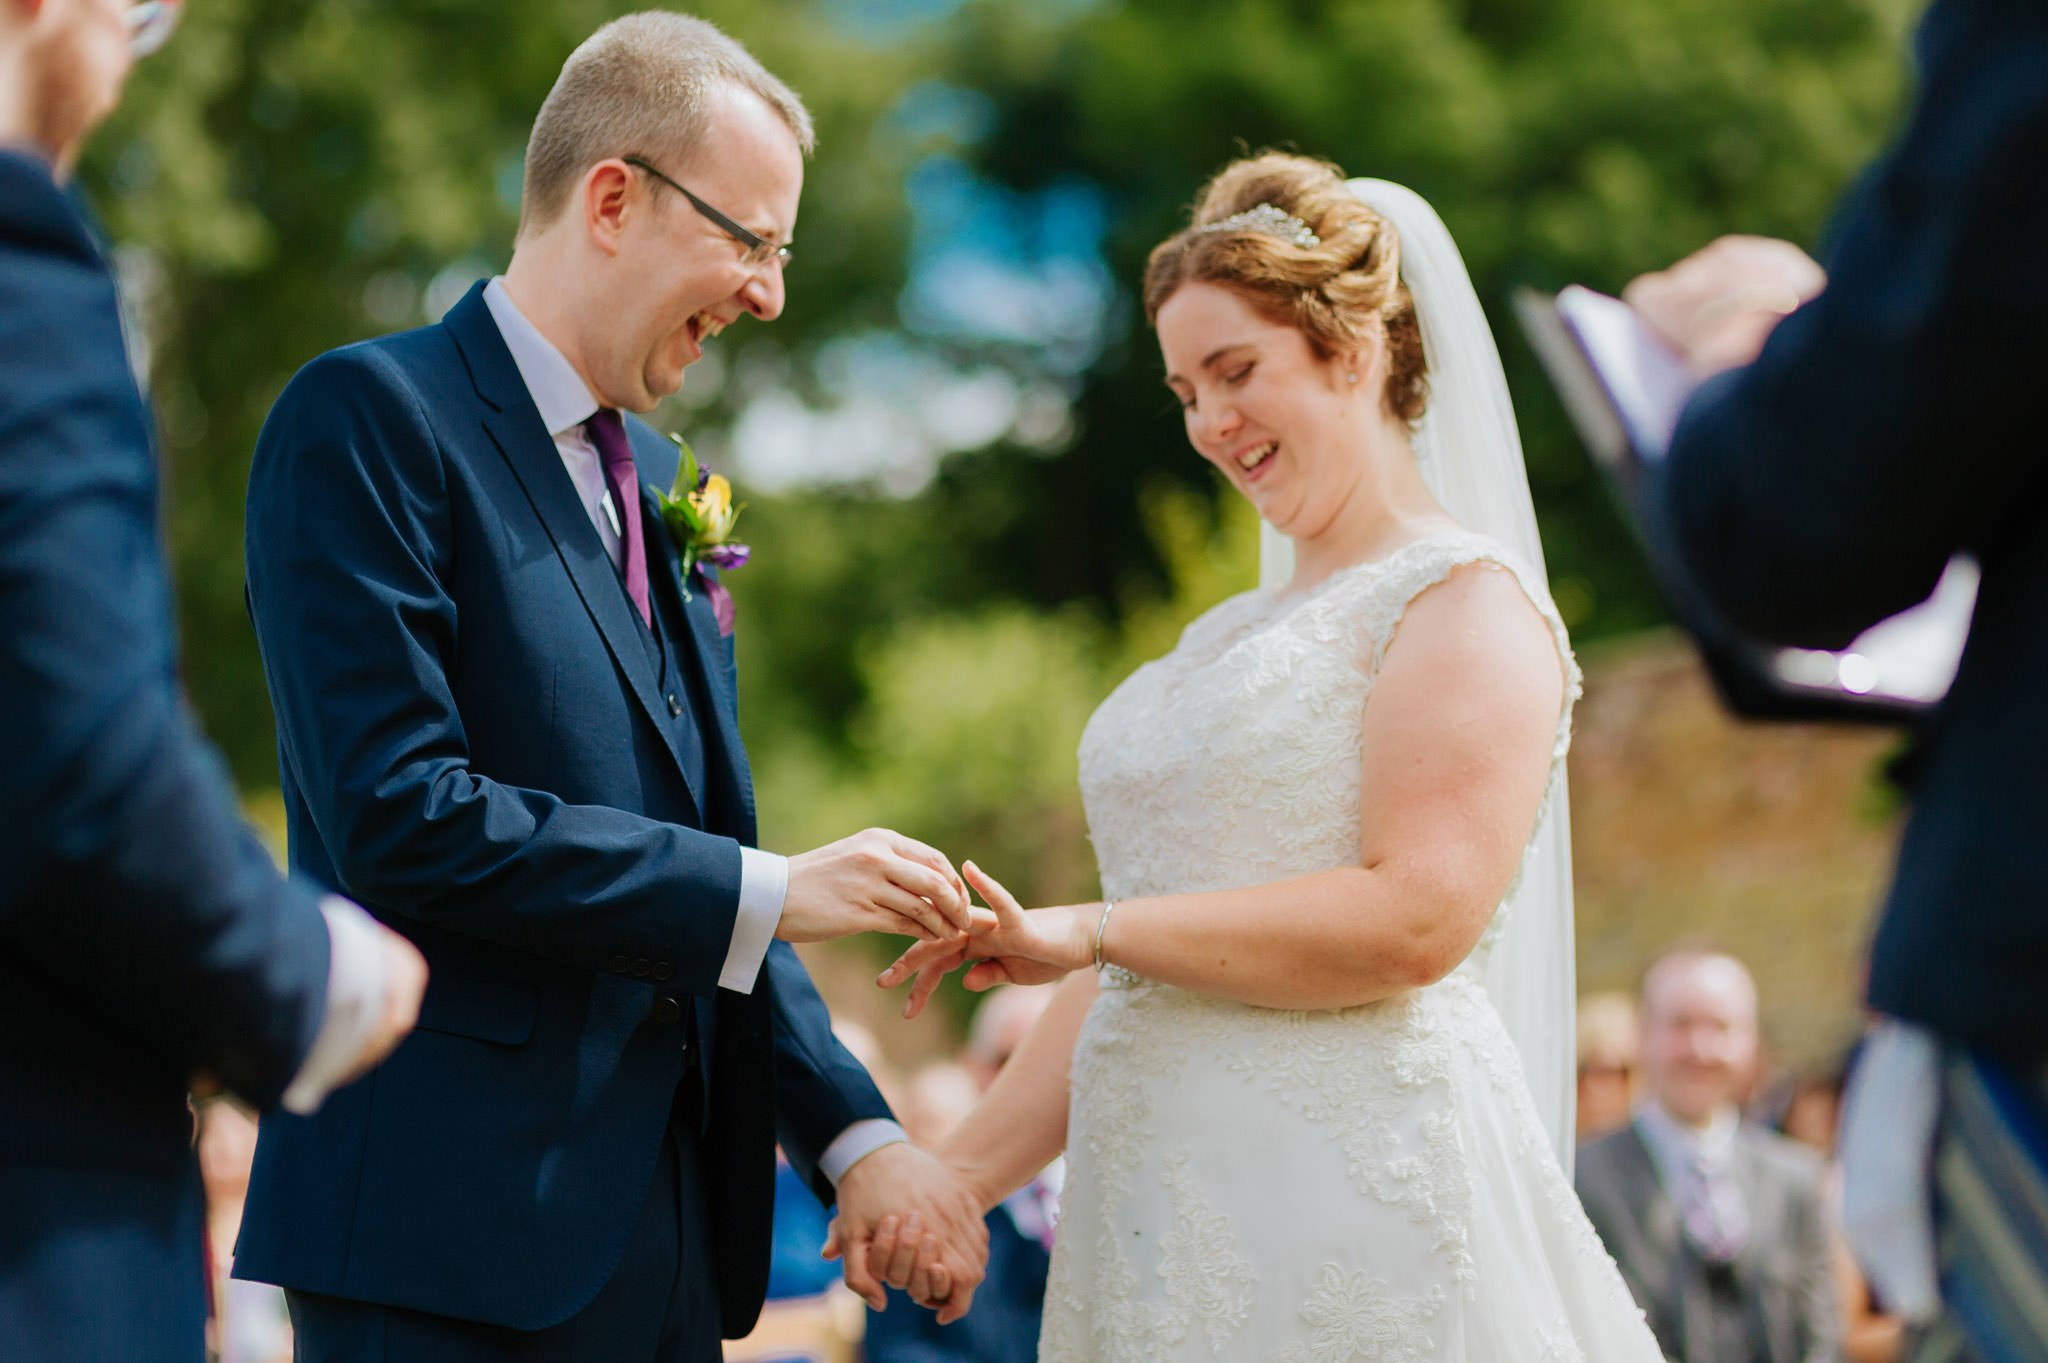 Wedding photography at Homme House in Herefordshire, West Midlands 34